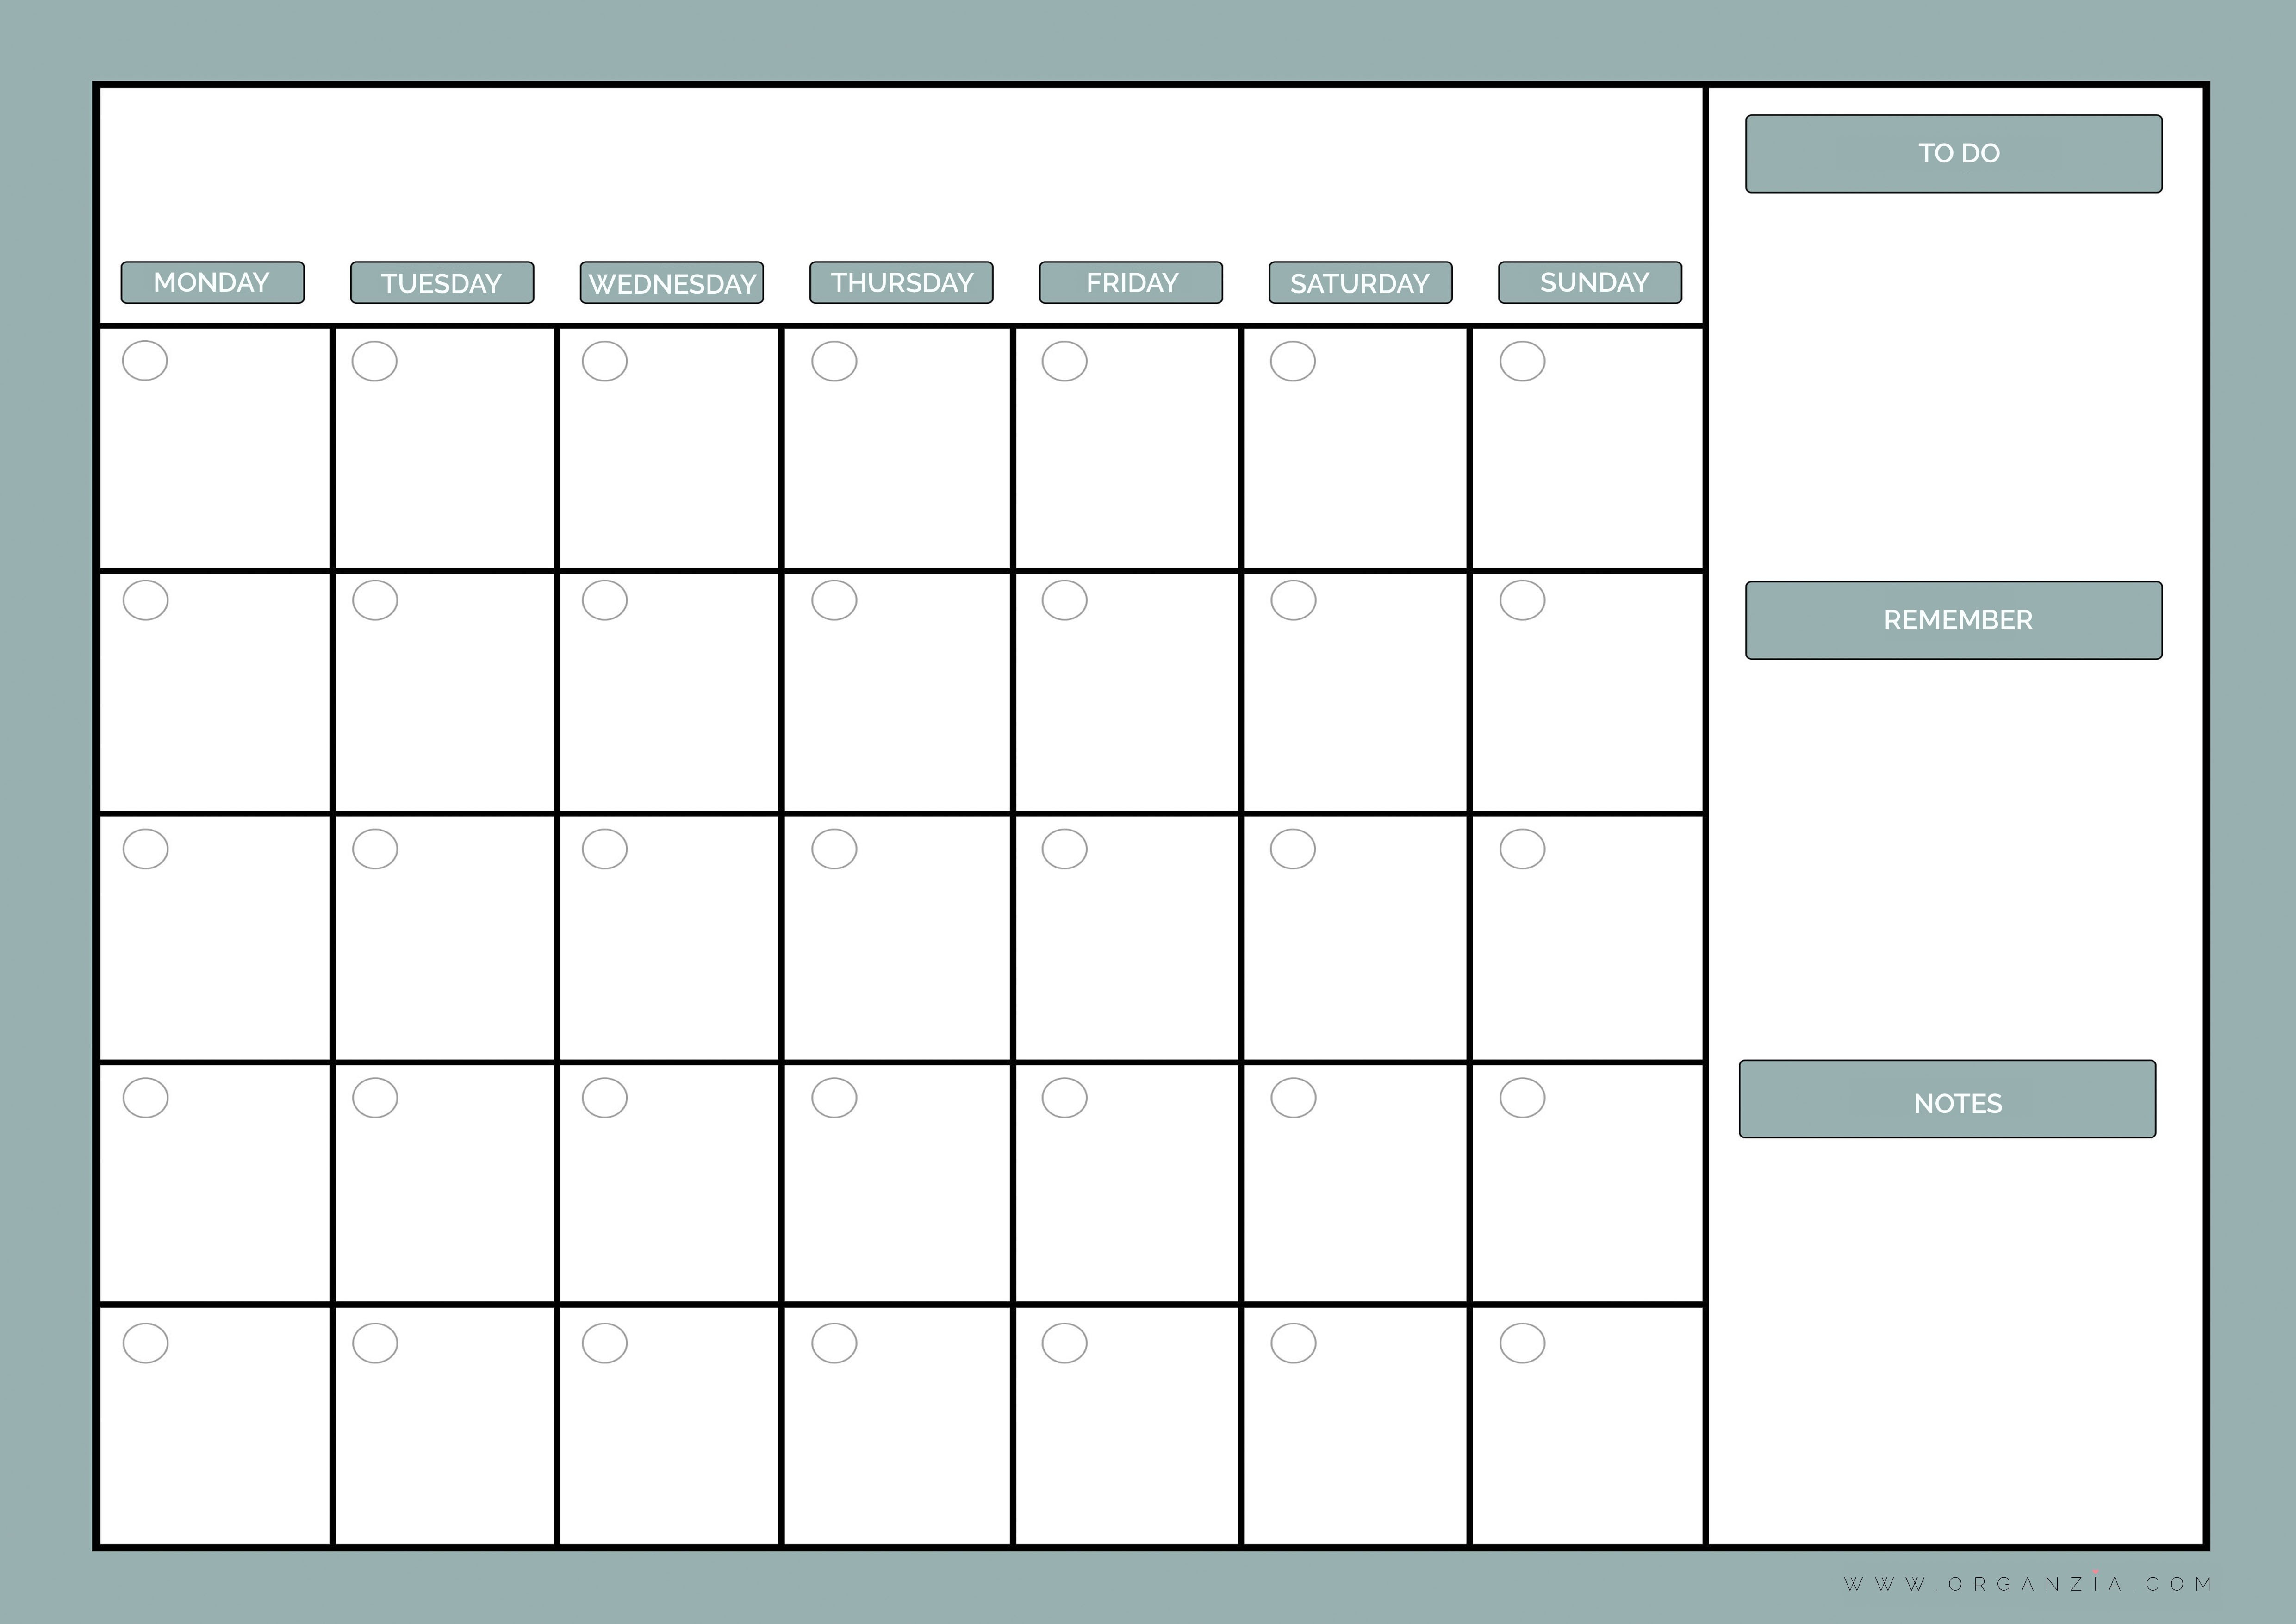 Printable Monthly Planner Calendar Diy Monthly Planner Dry Erase - Free Printable Monthly Planner